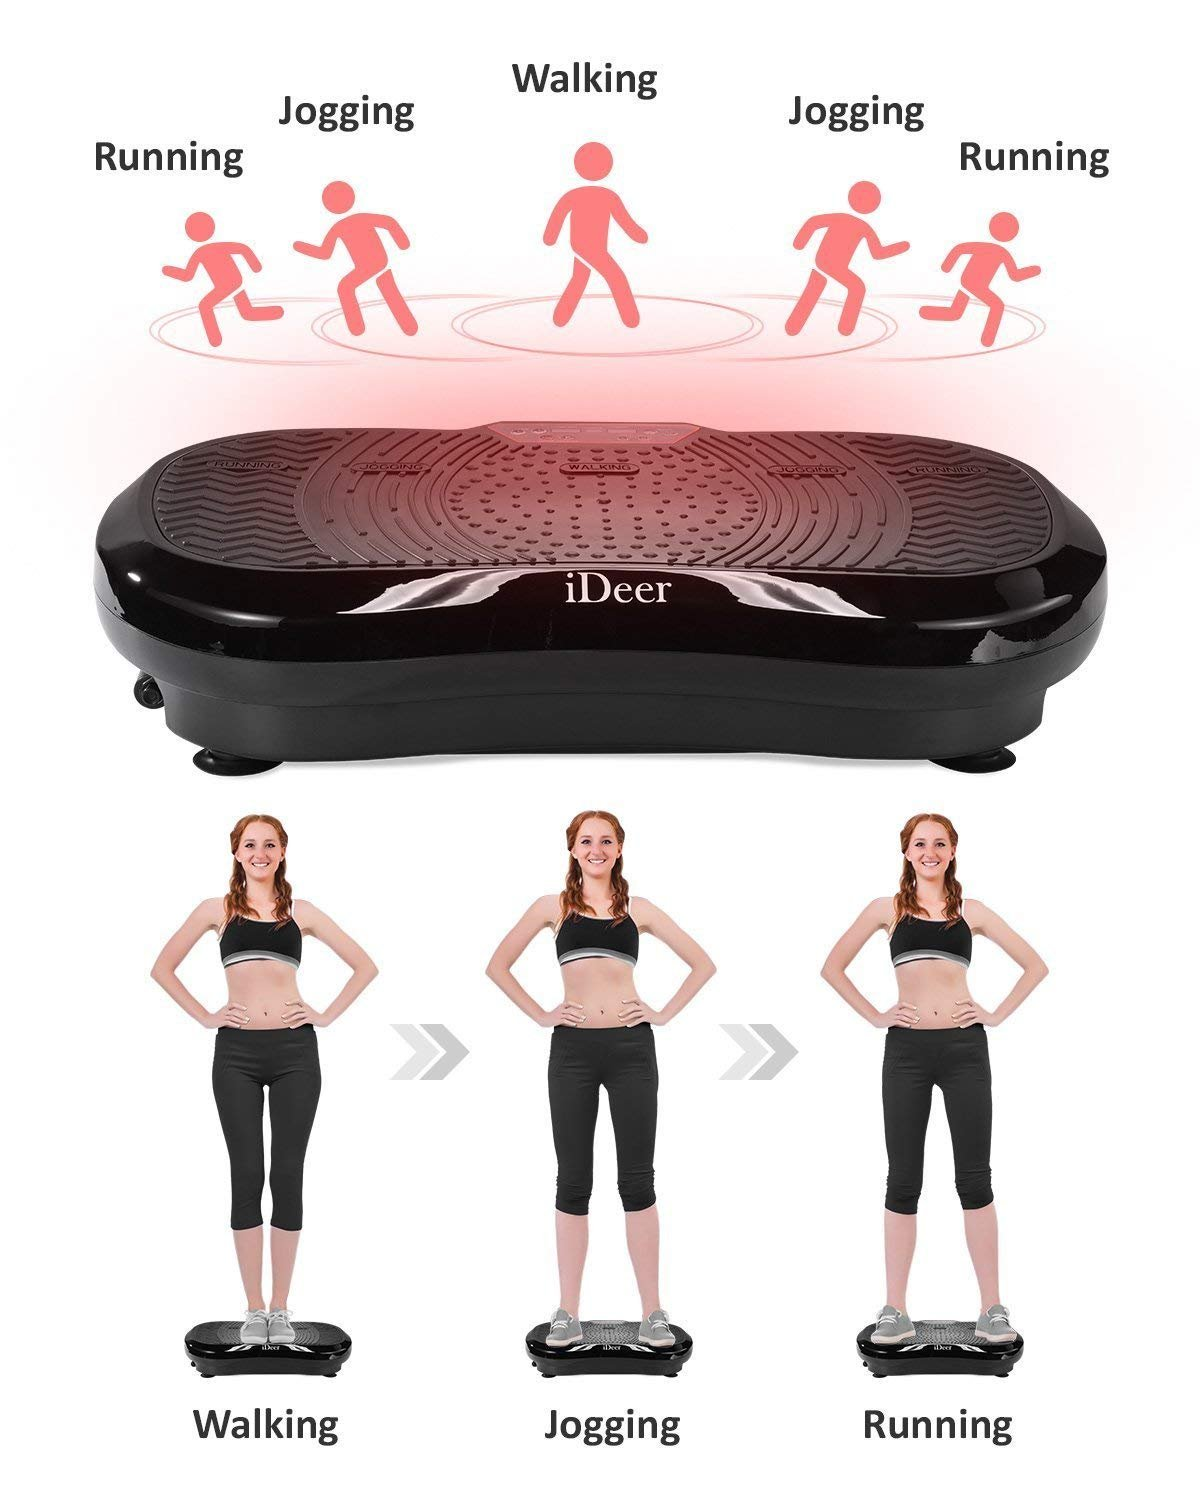 iDeer Vibration Platform Fitness Vibration Plates,Whole Body Vibration Exercise Machine w/Remote Control &Bands,Anti Slip Fit Massage Workout Trainer Max User Weight 330lbs